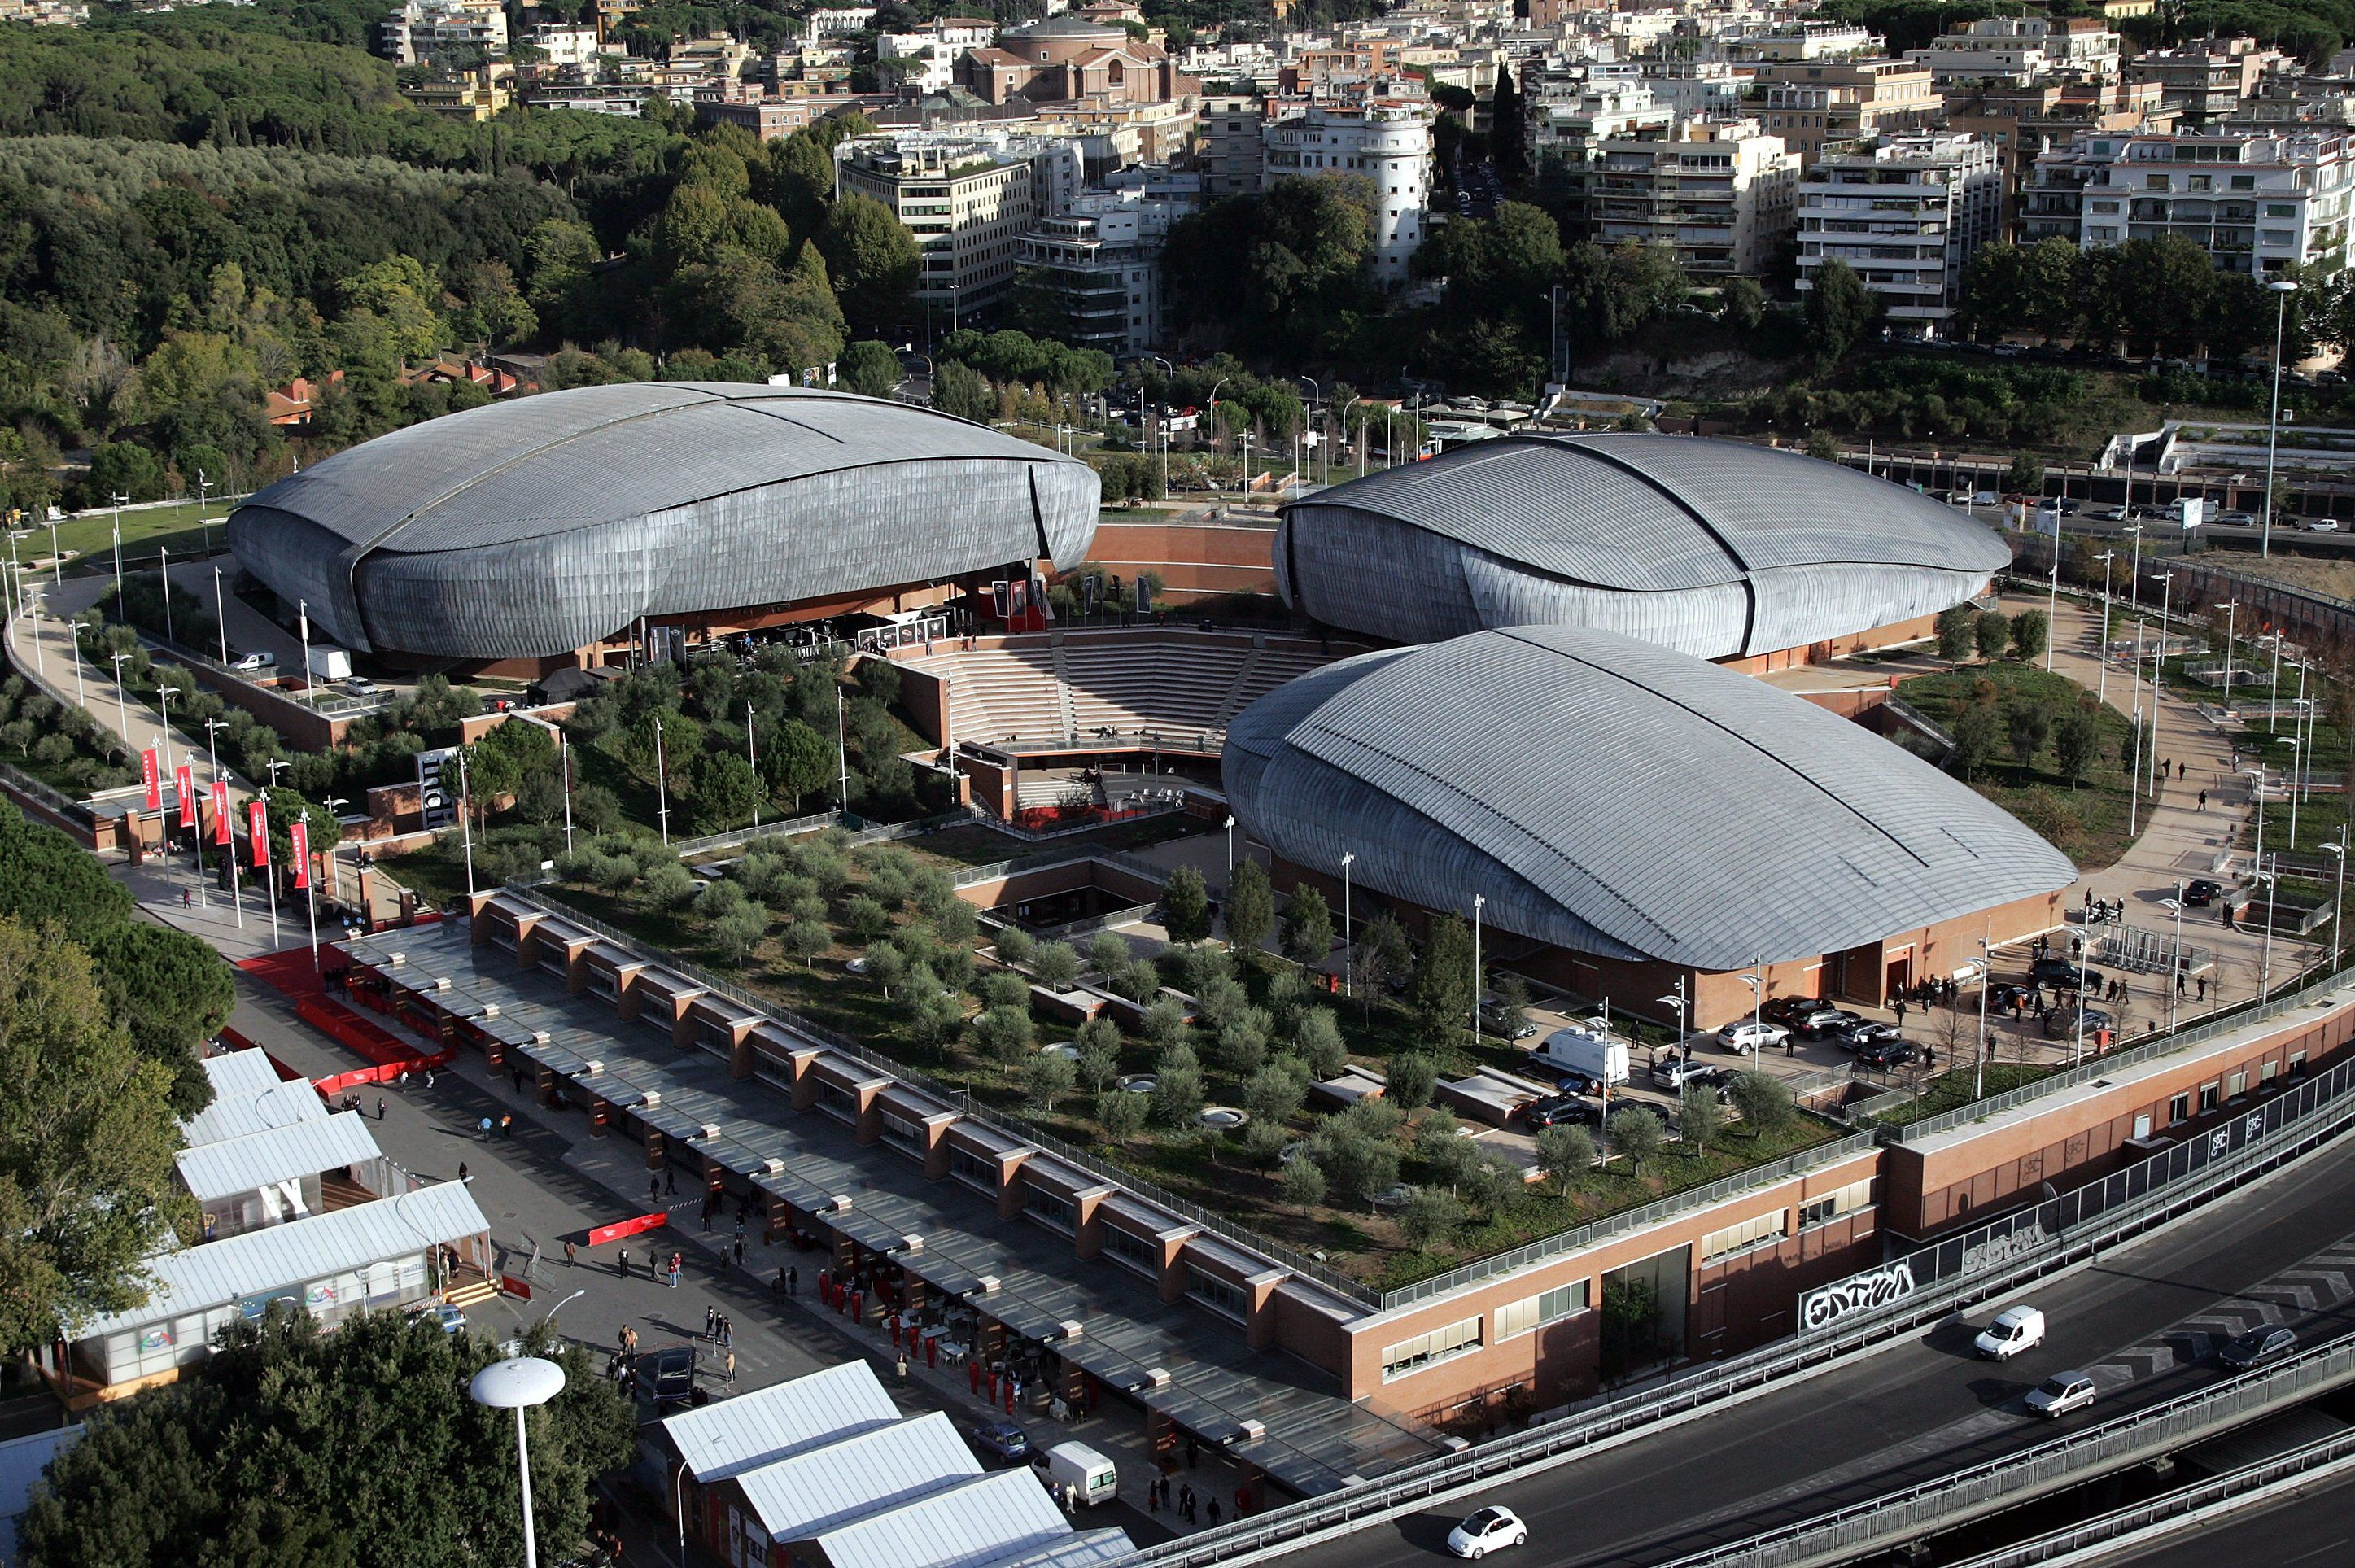 aerial view of three large, asymmetrical blob-like buildings surrounding an amphitheater